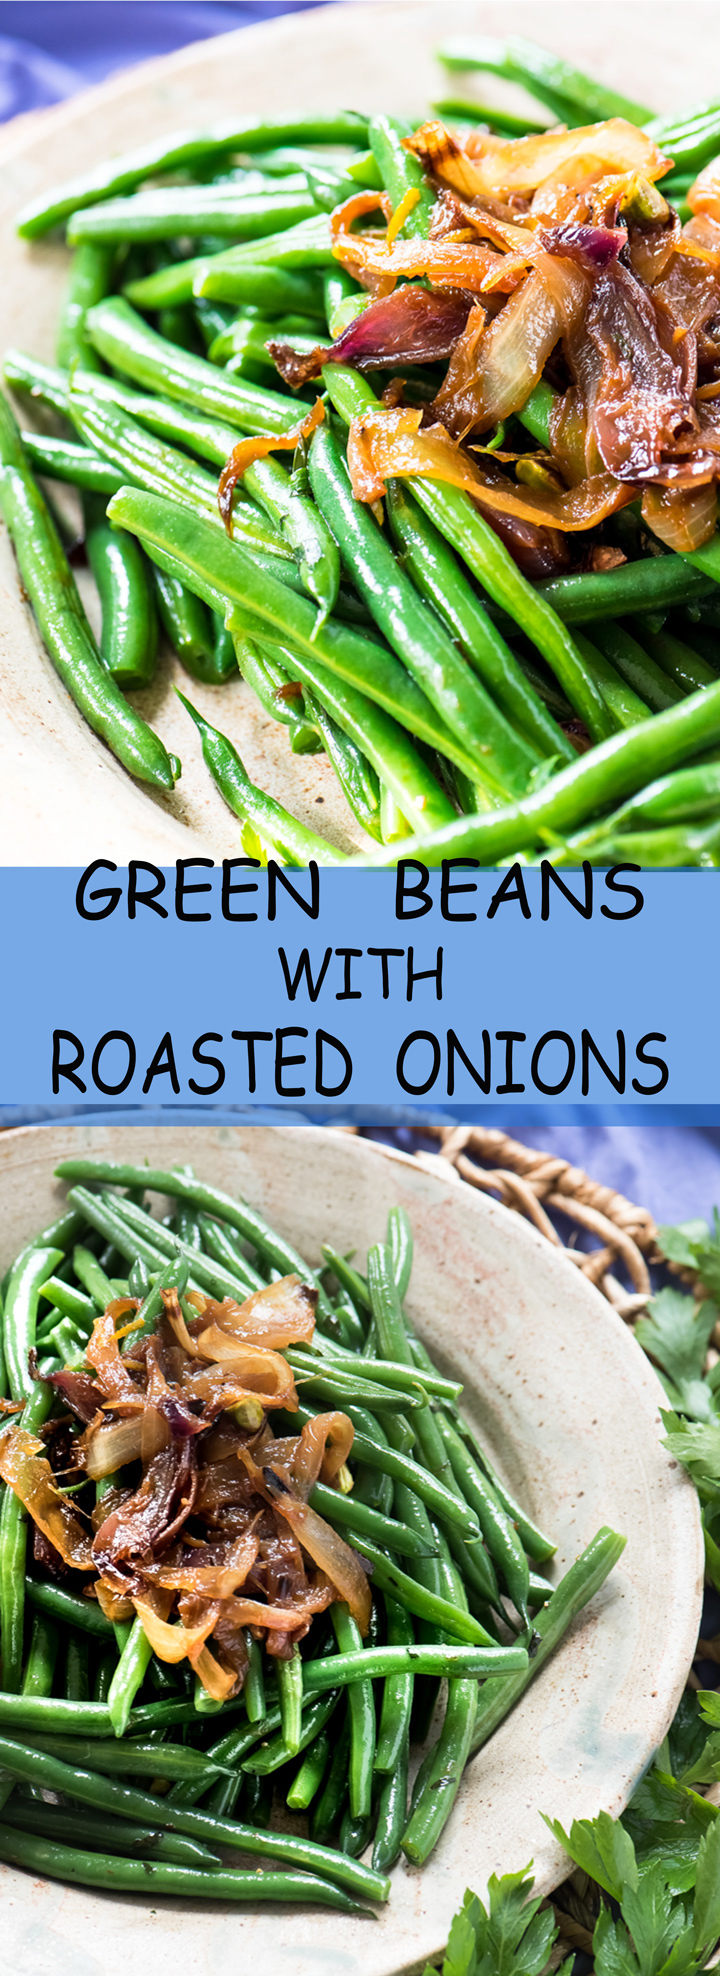 Green Beans with Roasted Onions a healthy alternative for Green bean casserole